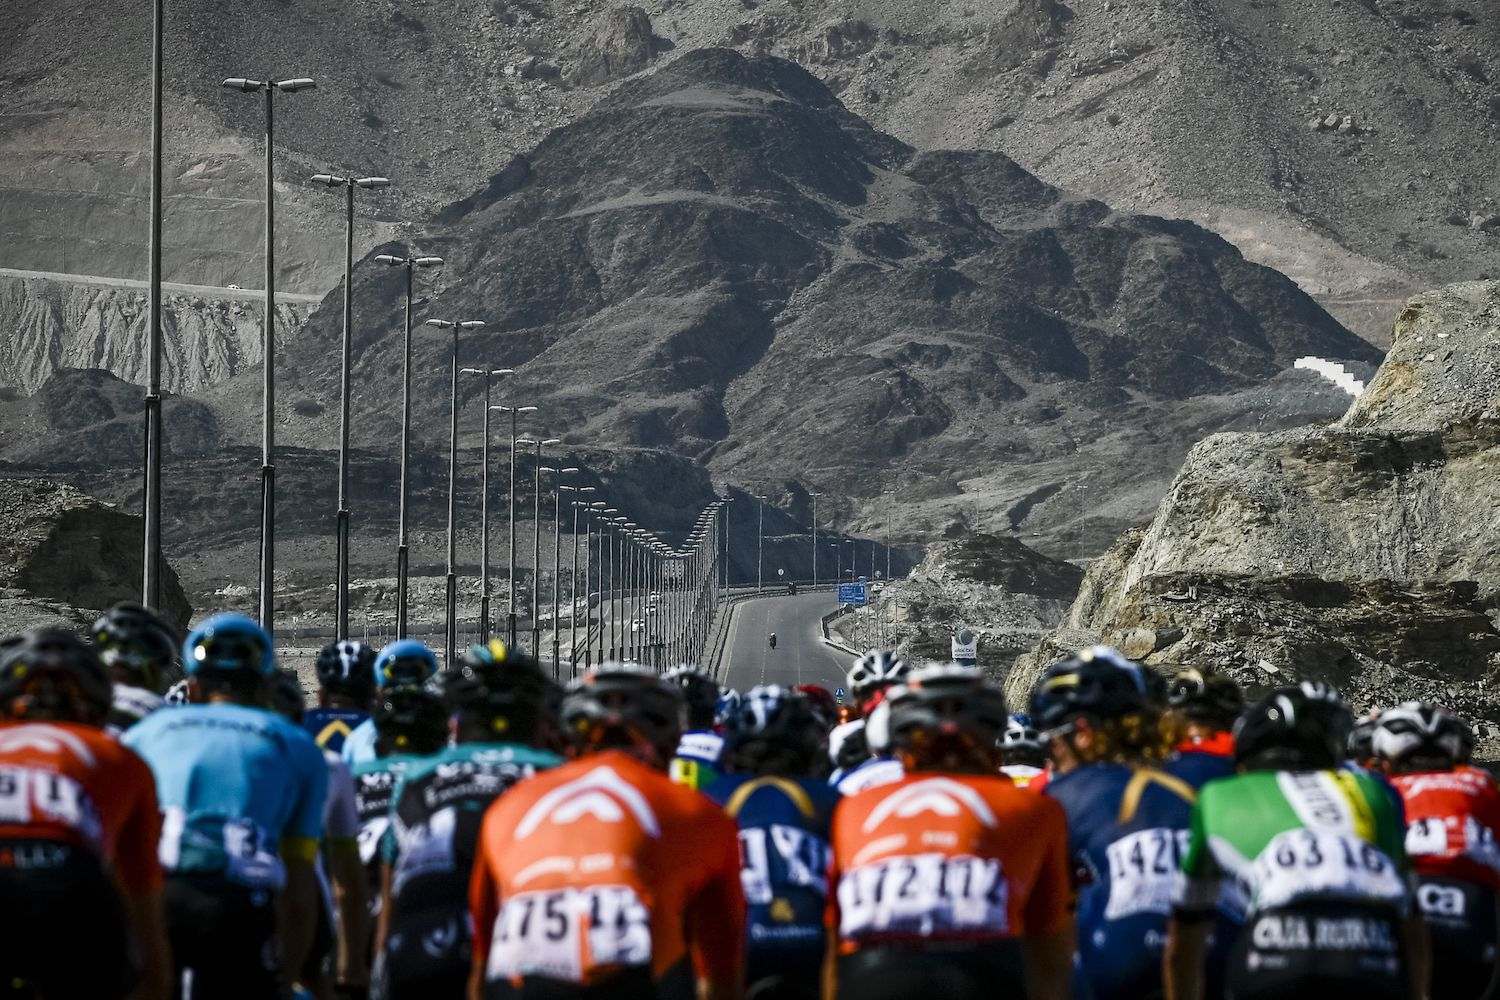 TOPSHOT - The peloton rides during the fourth stage of the cycling Tour of Oman between Yiti and Ministry of Tourism near Al Amerat on February 16, 2018. / AFP PHOTO / Philippe LOPEZ        (Photo credit should read PHILIPPE LOPEZ/AFP/Getty Images)